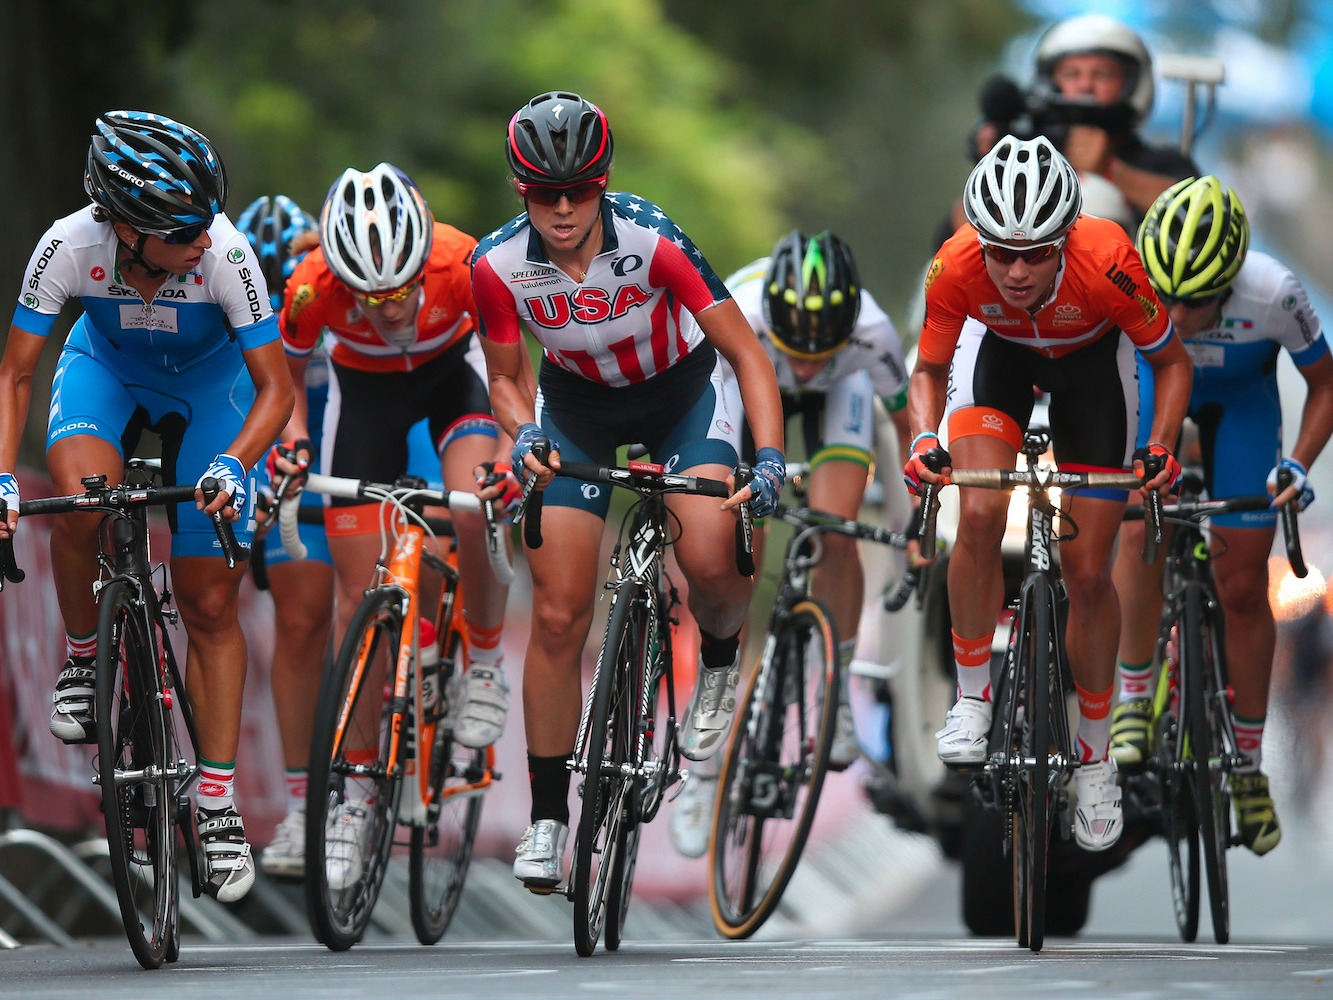 Bicycle Race Wallpapers High Quality | Download Free